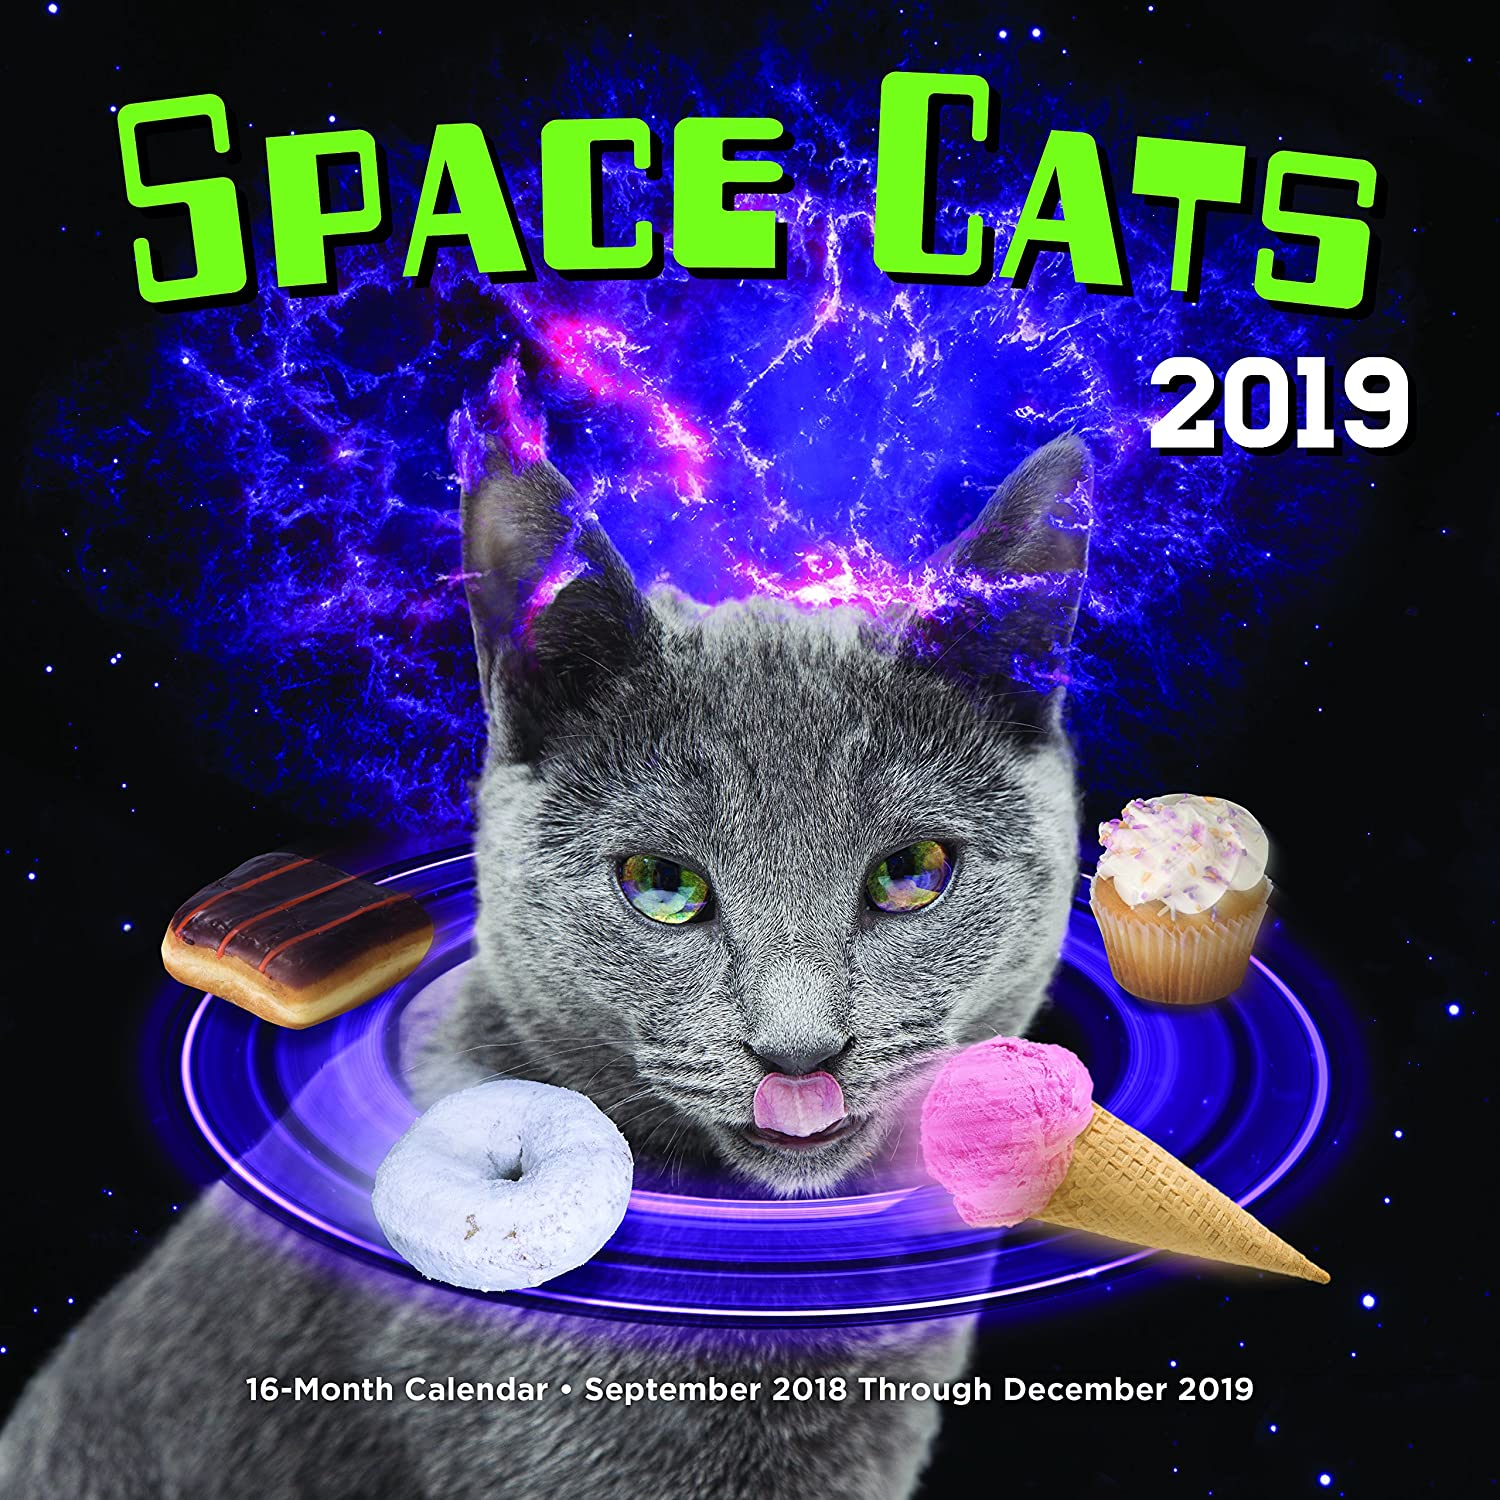 Space Cats 2019: 16-Month Calendar - September 2018 through December 2019 Editors of Rock Point 1631064738 Calendars NON-CLASSIFIABLE